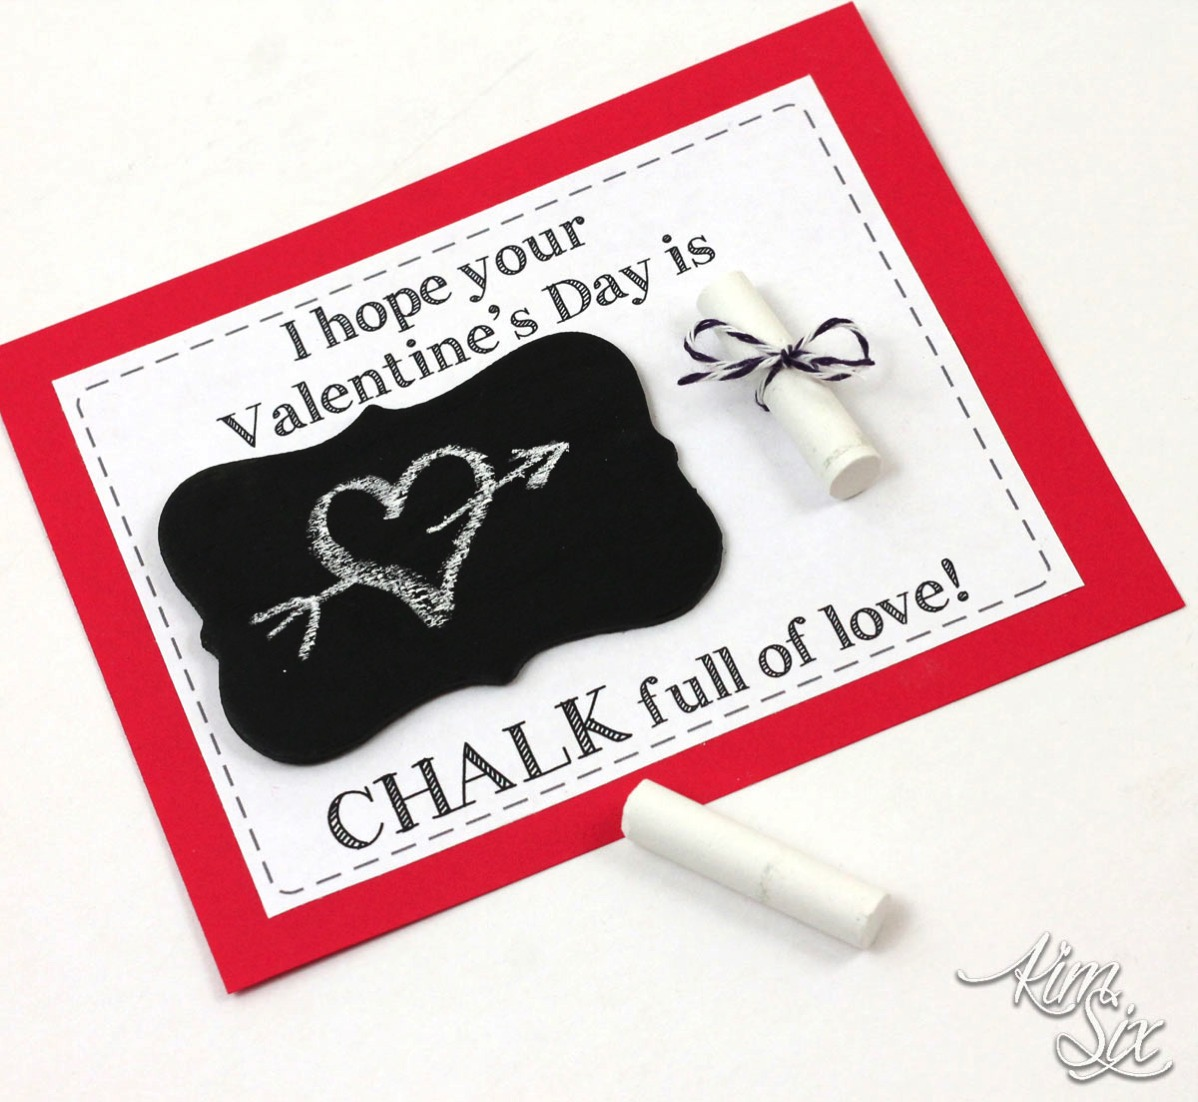 Chalk school valentine